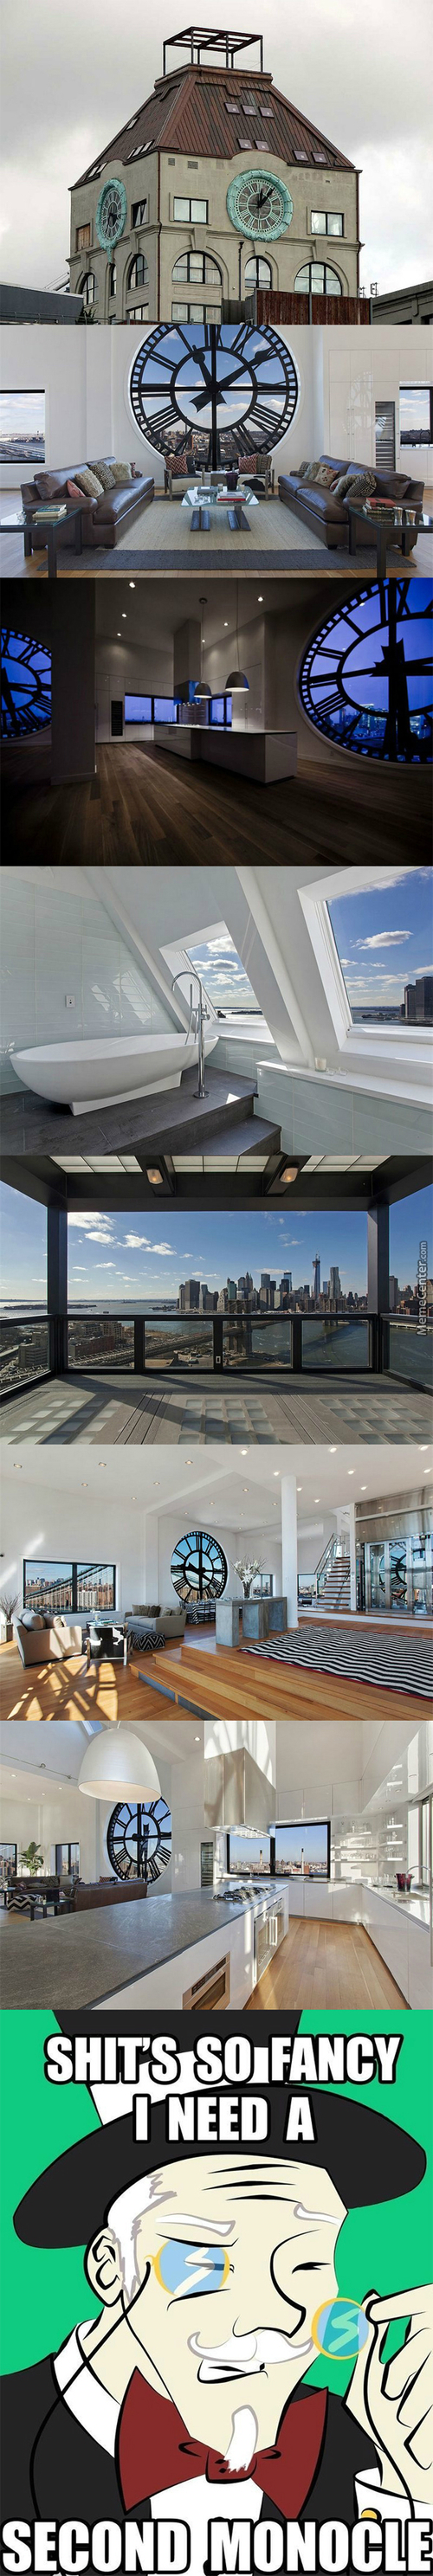 Clock Tower Penthouse Anyone?